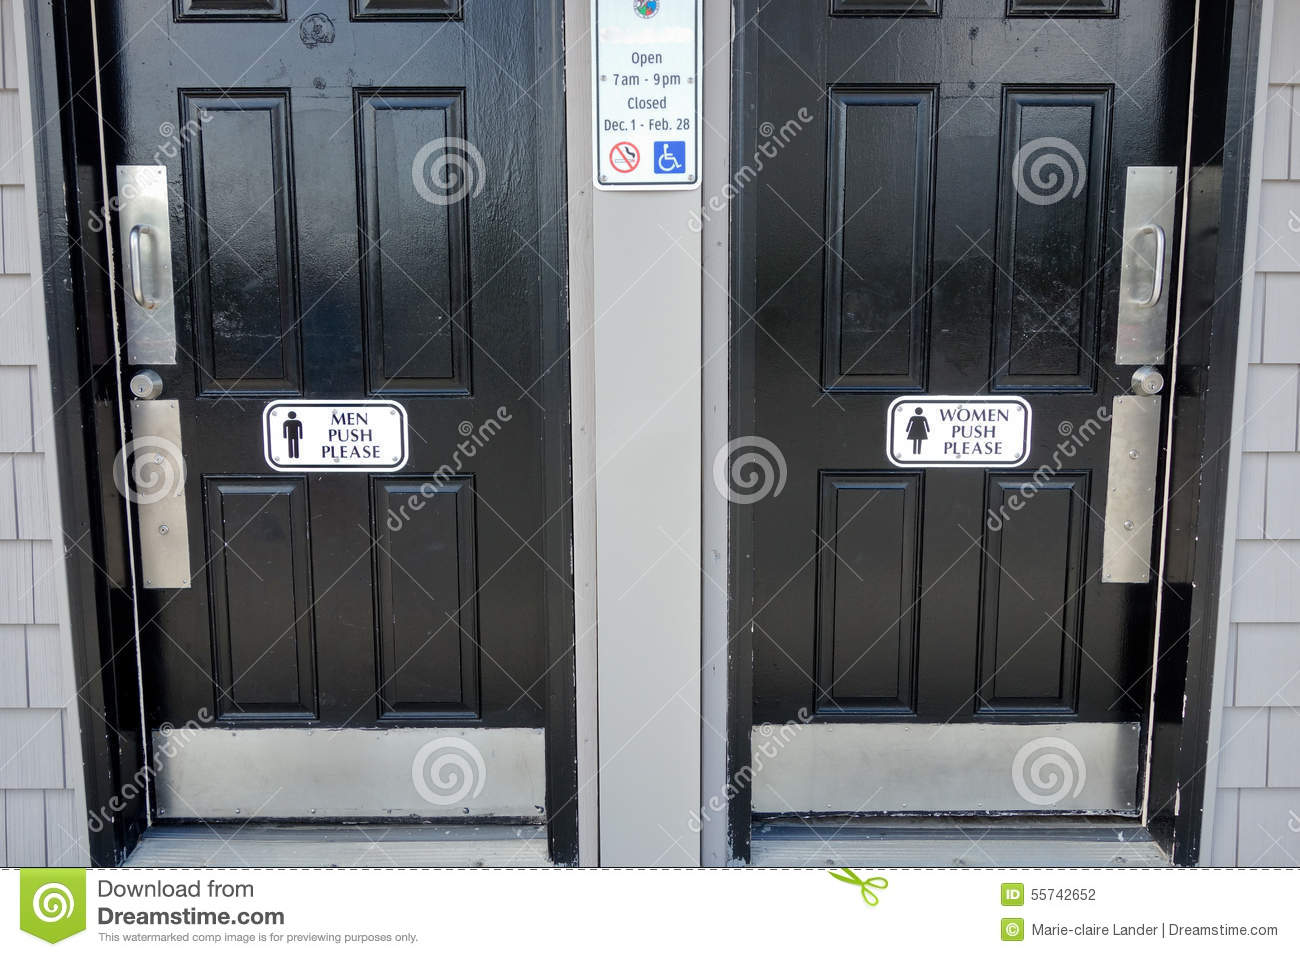 mens and womens bathroom signs. Men Women Black Bathroom Doors With Push Please Sign On Door Mens And Womens Signs